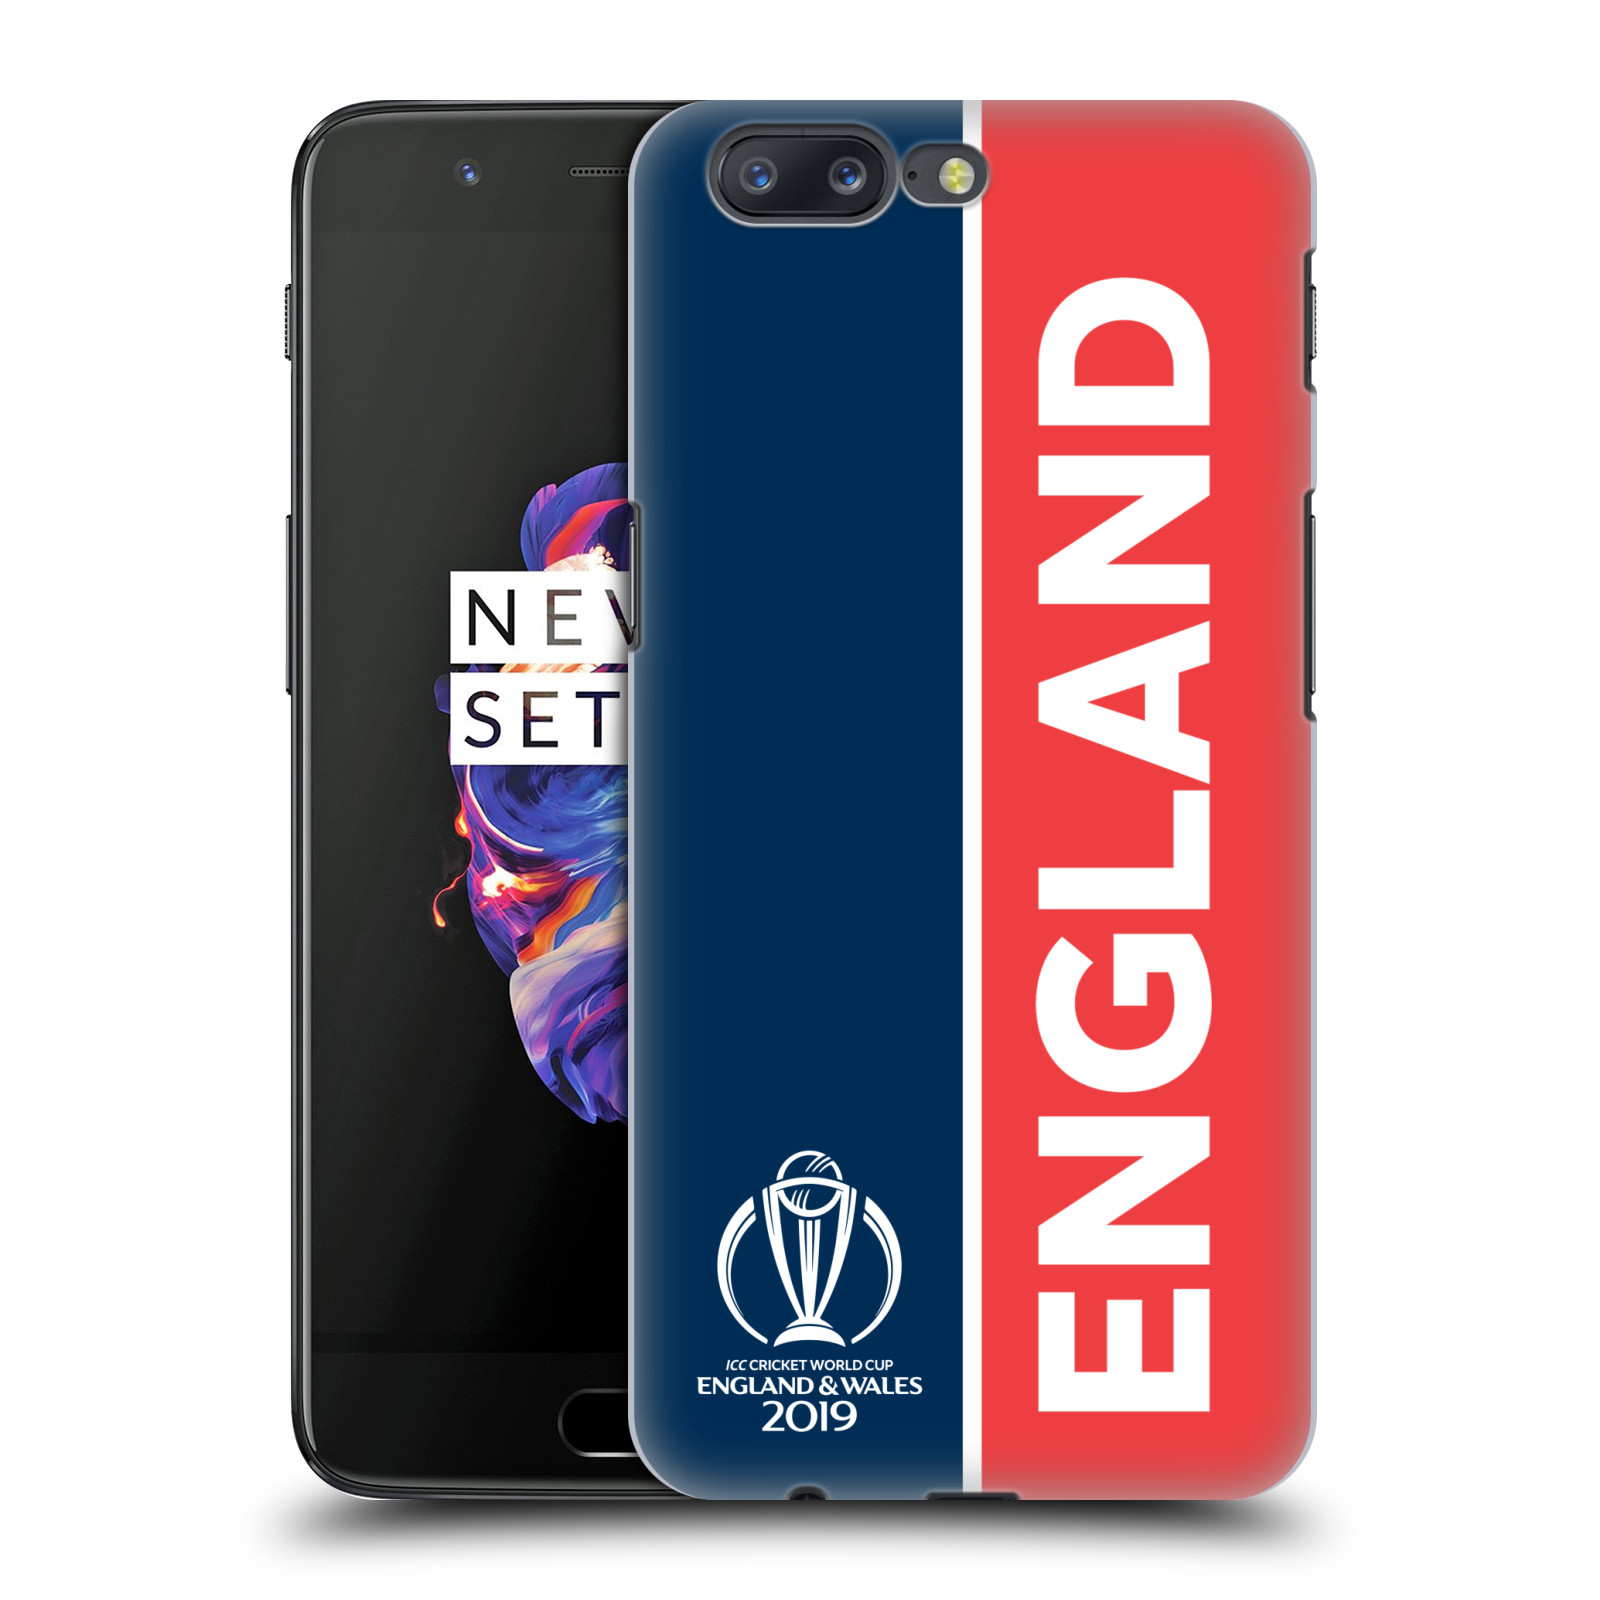 OFFICIAL-ICC-ENGLAND-HARD-BACK-CASE-FOR-ONEPLUS-ASUS-AMAZON